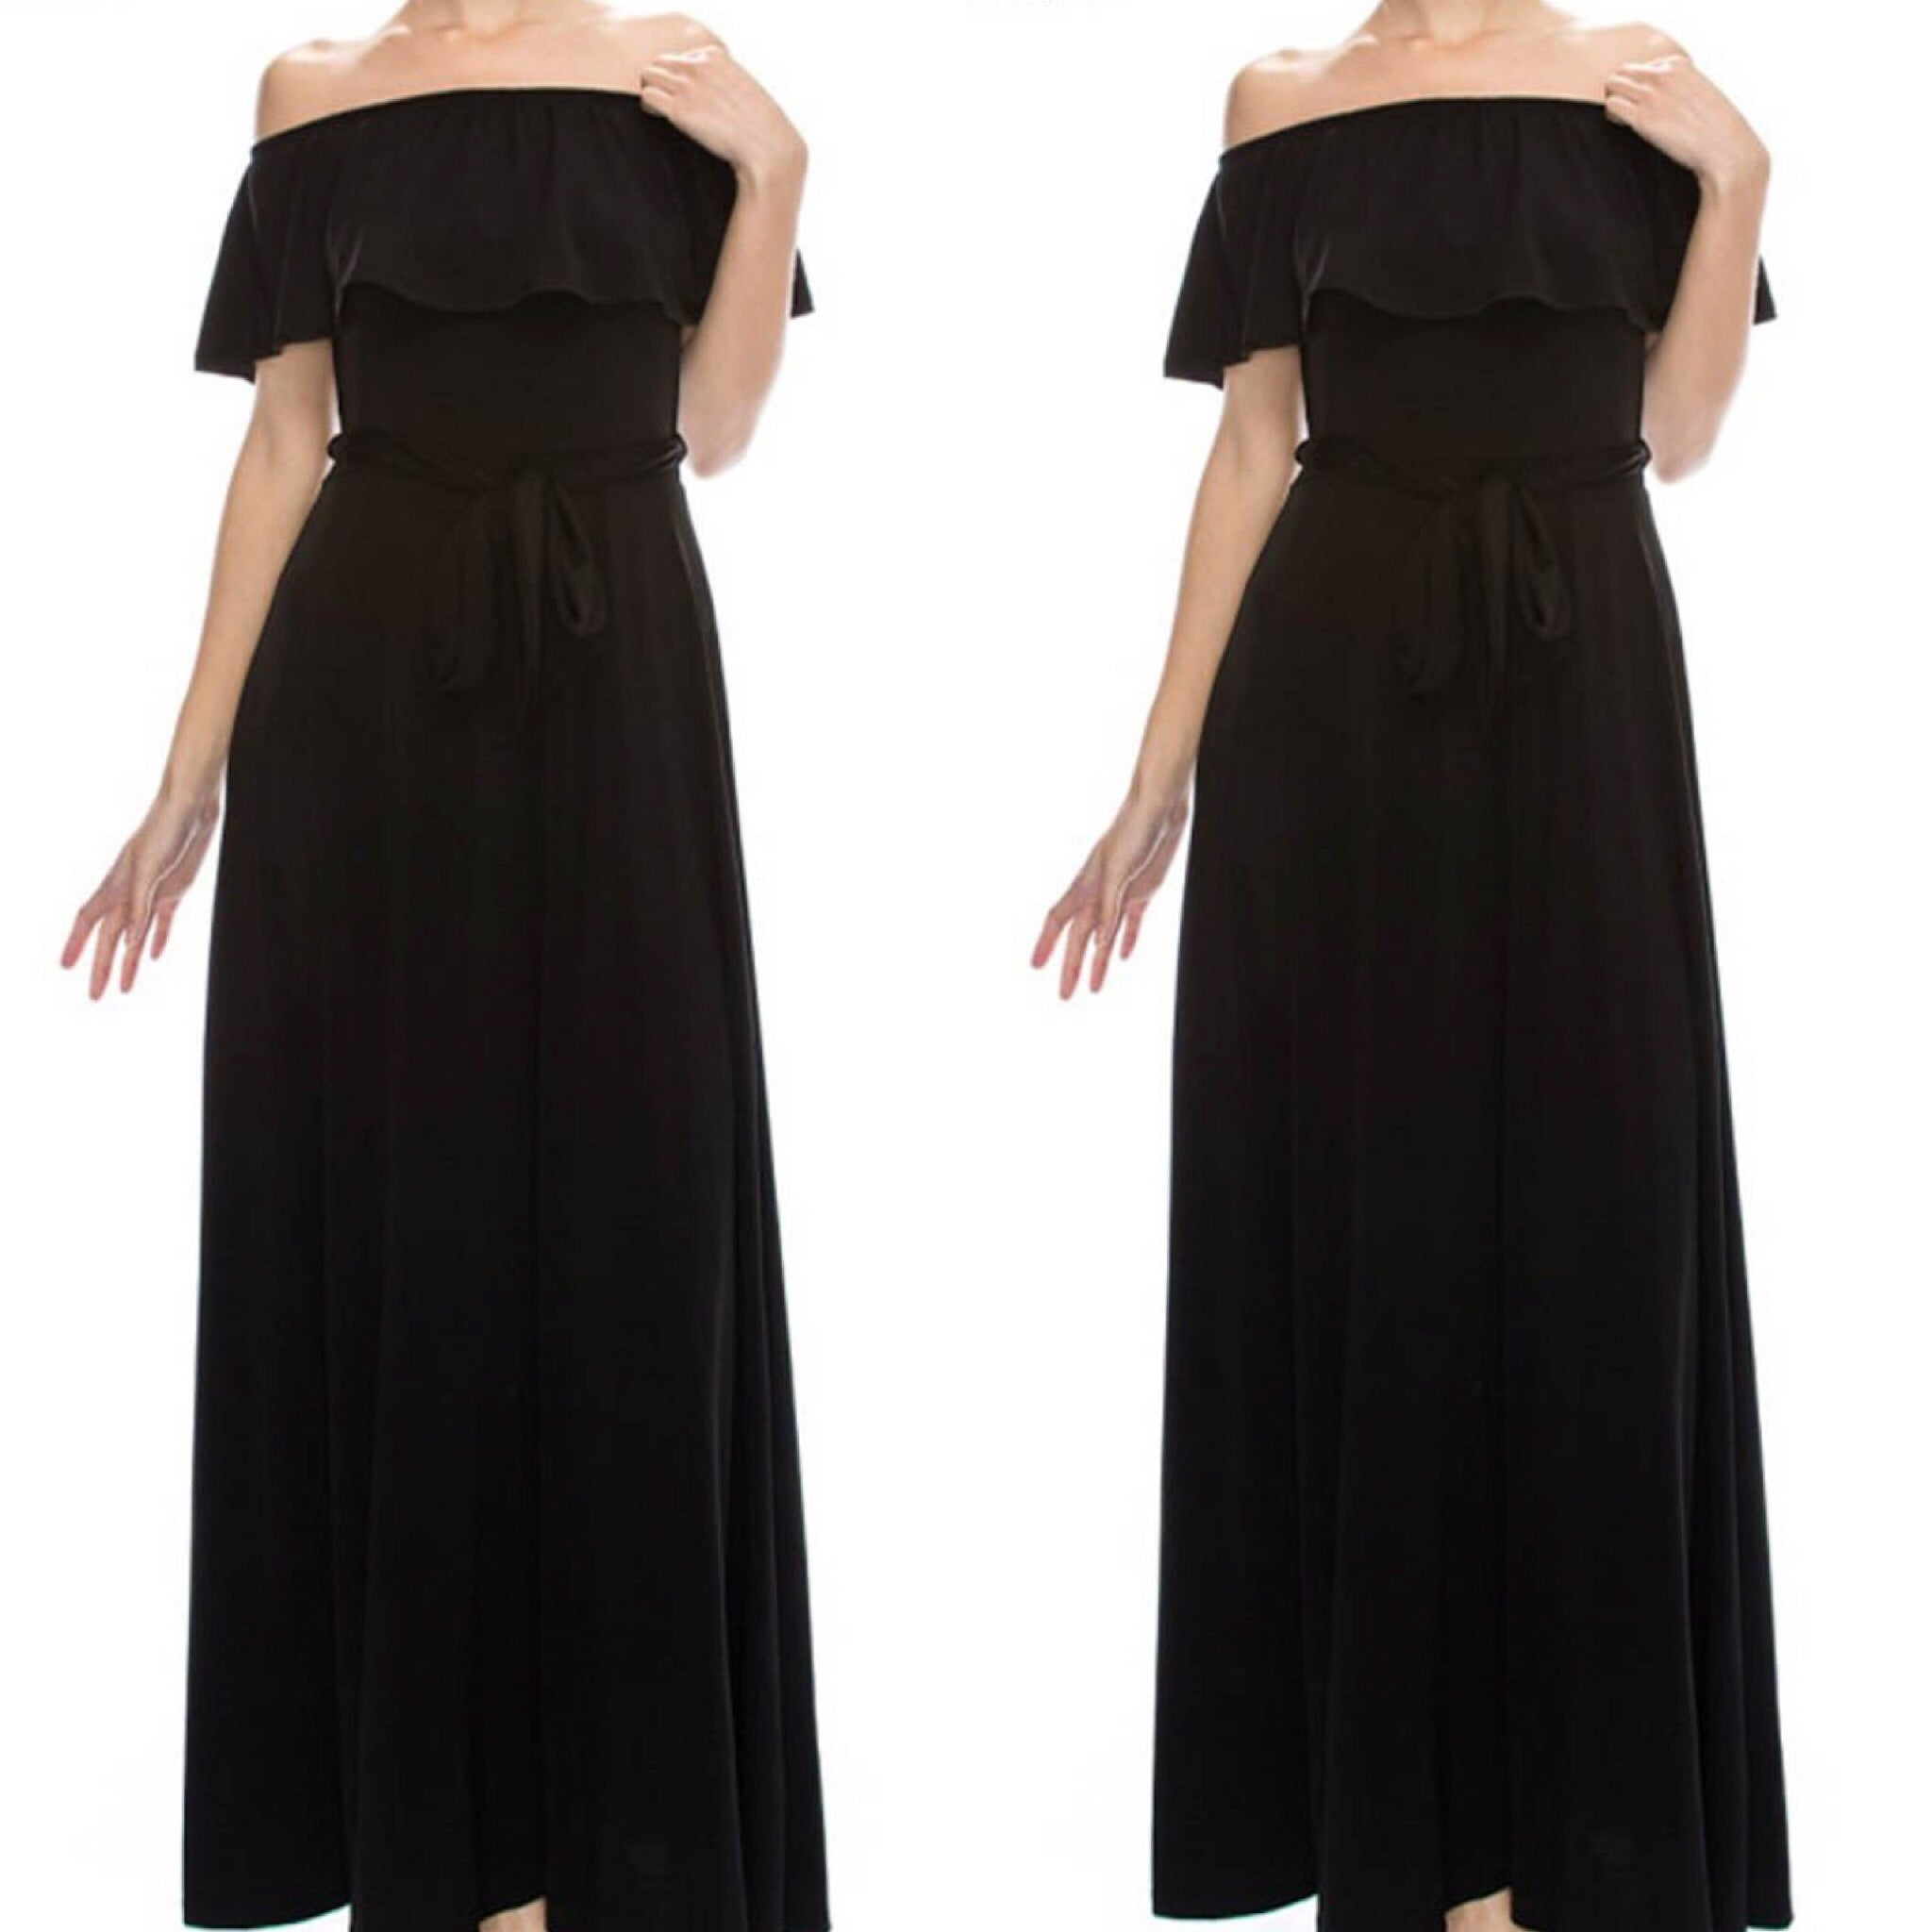 Black Off The Shoulder Long Maxi Dress - socialbutterflycollection-com